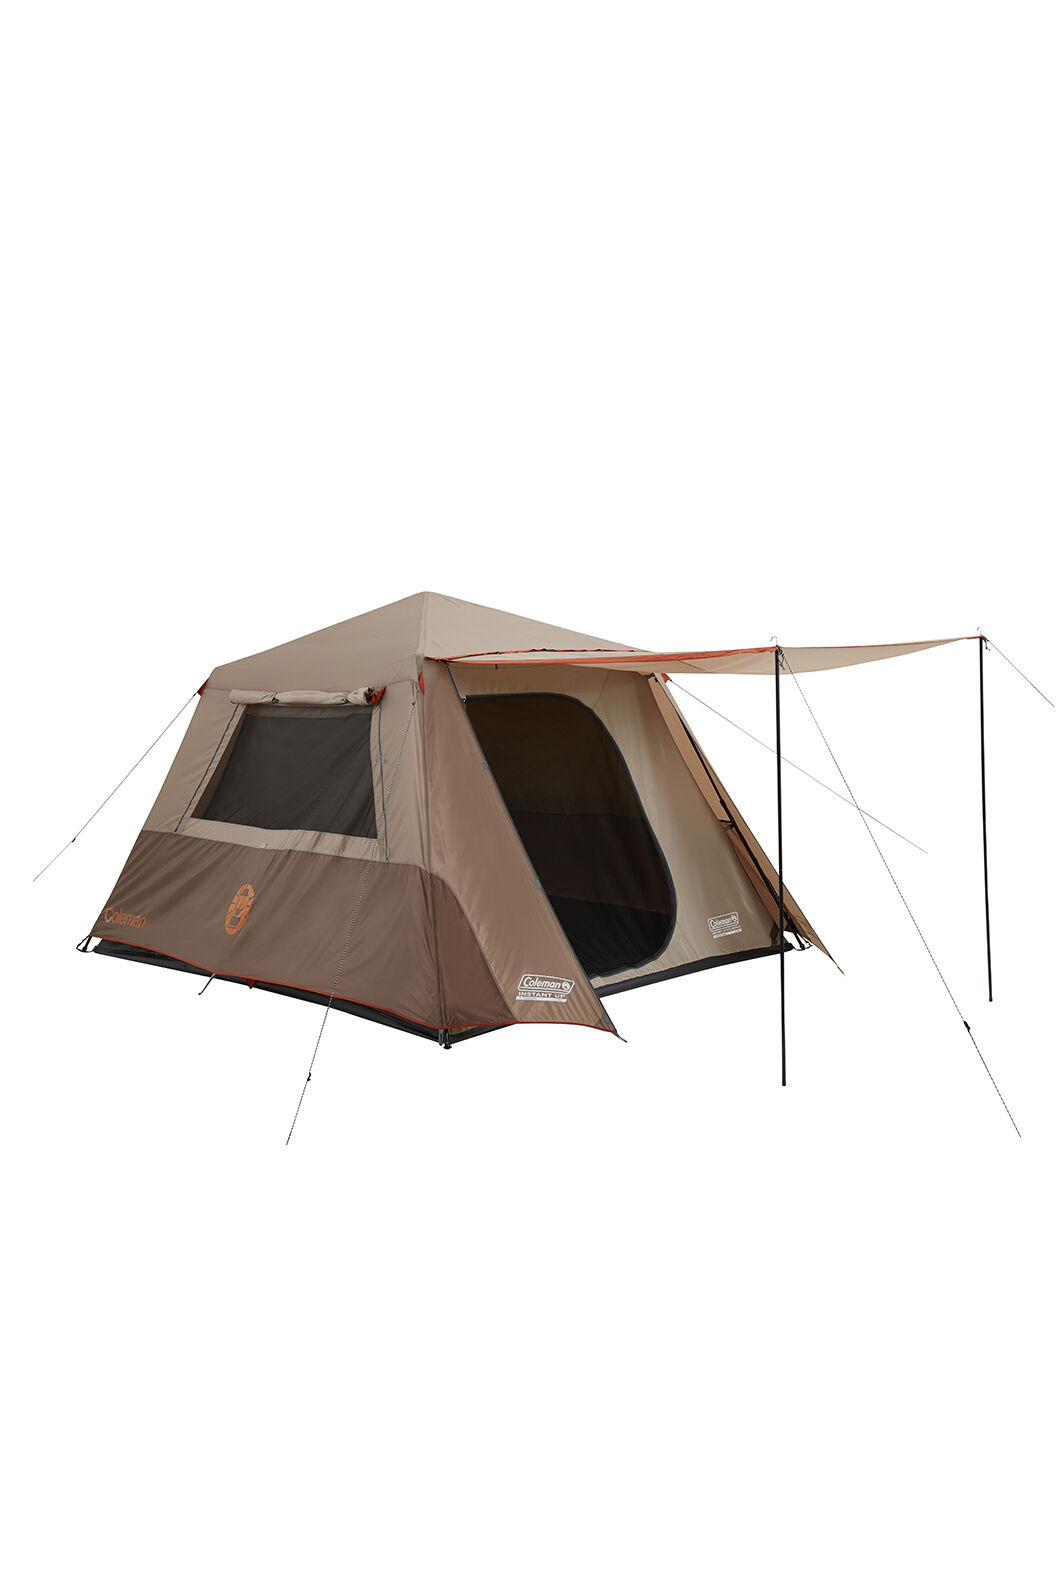 Coleman Instant Up 6P Silver Series Evo Tent, None, hi-res